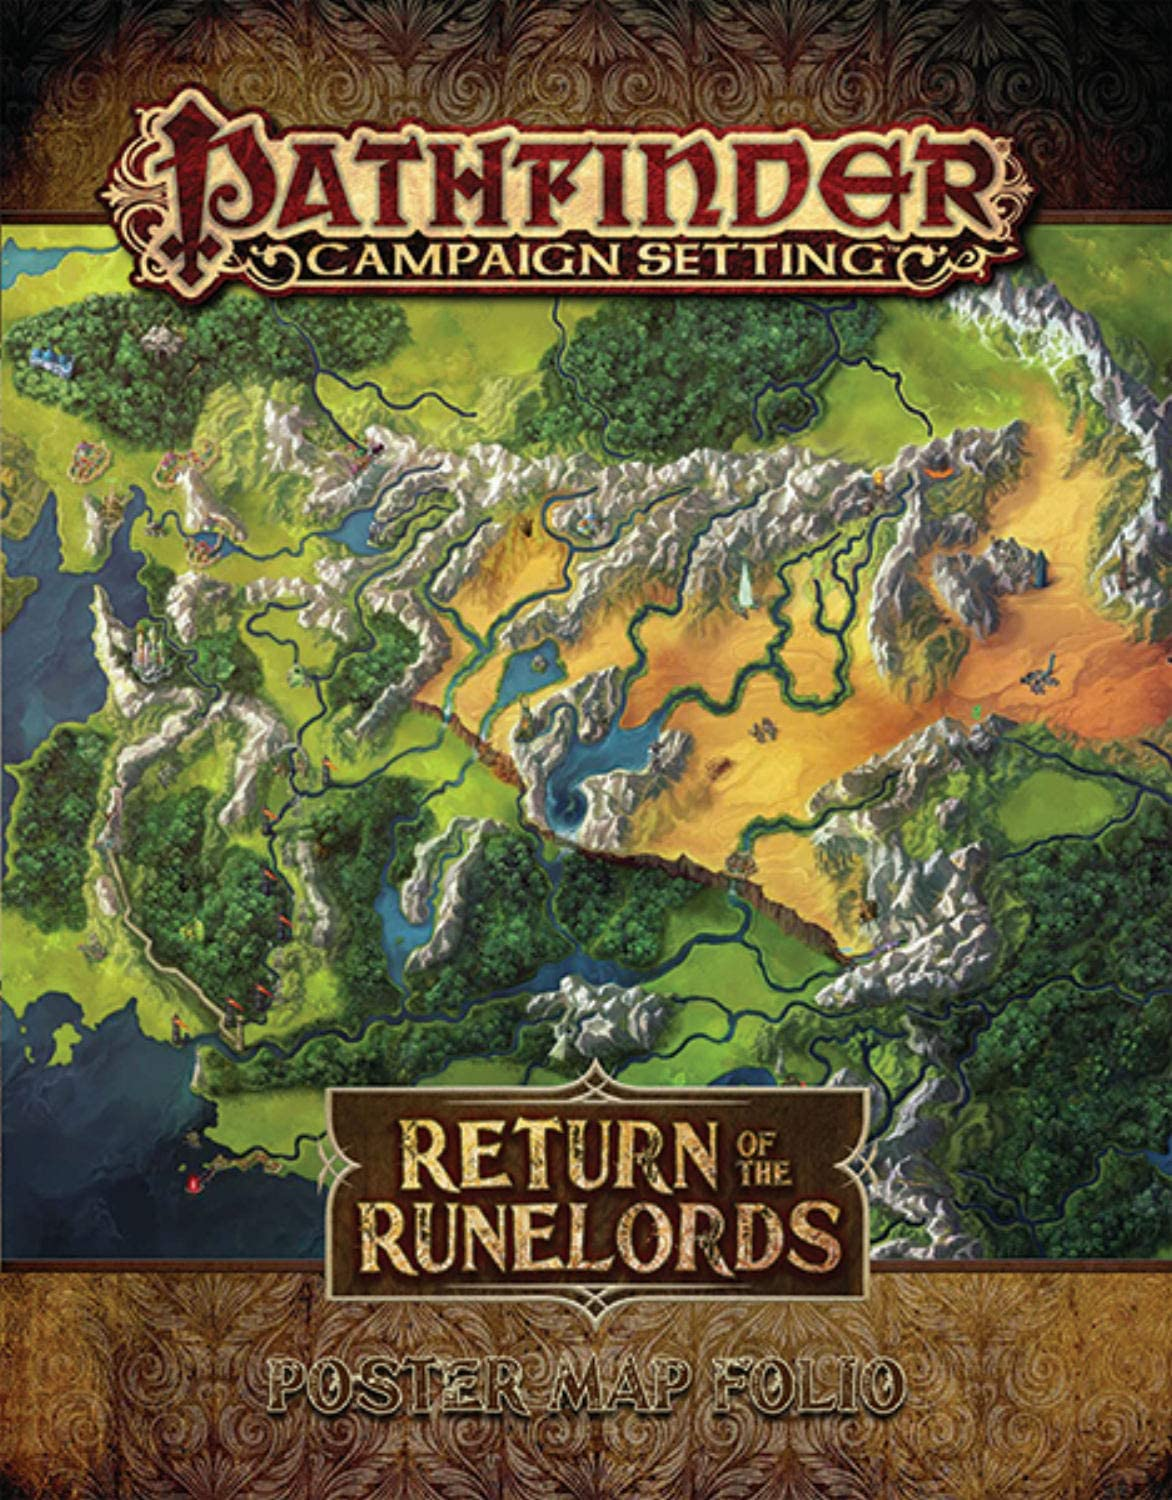 Pathfinder Campaign Setting: Return of the Runelords Poster Map Folio: Amazon.es: Juguetes y juegos